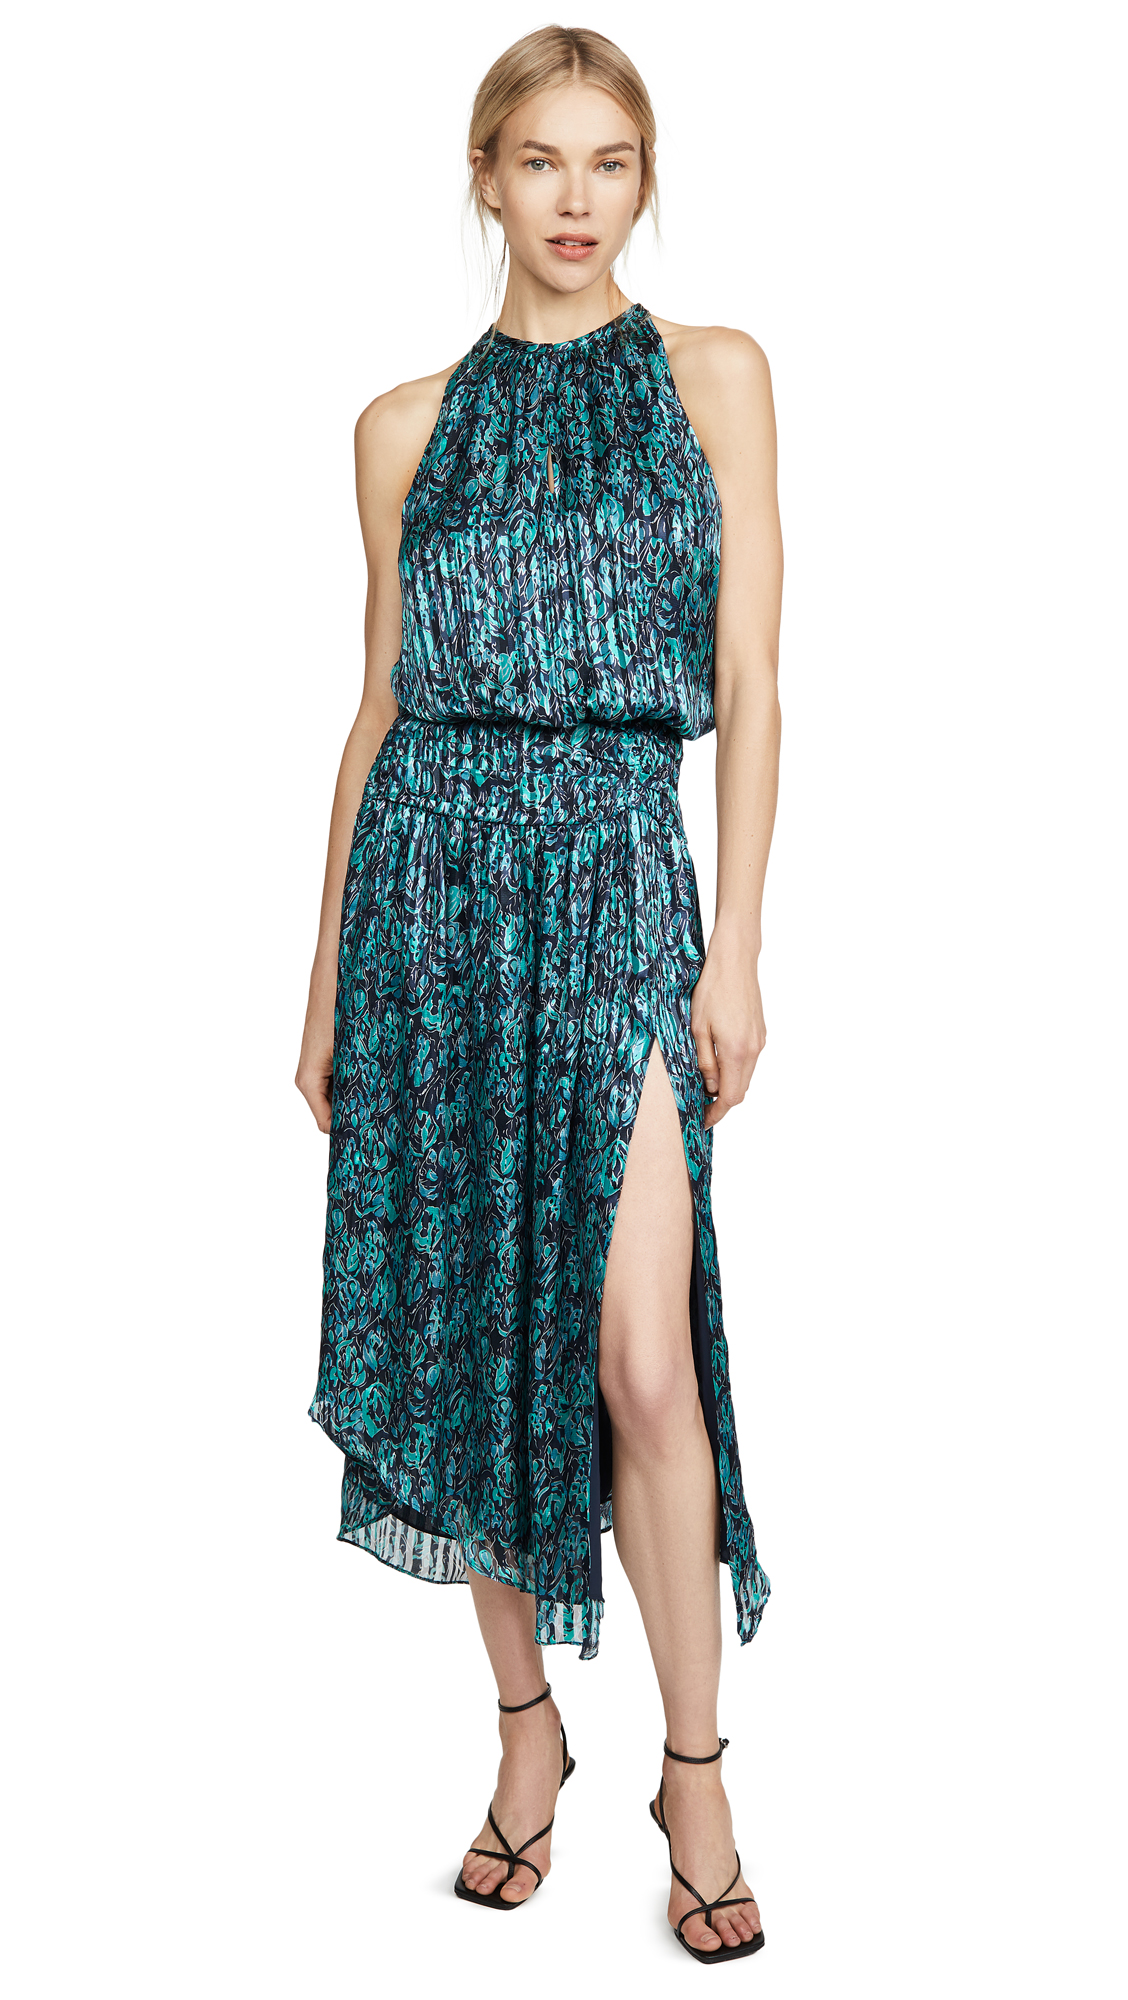 Ramy Brook Layla Dress - 50% Off Sale